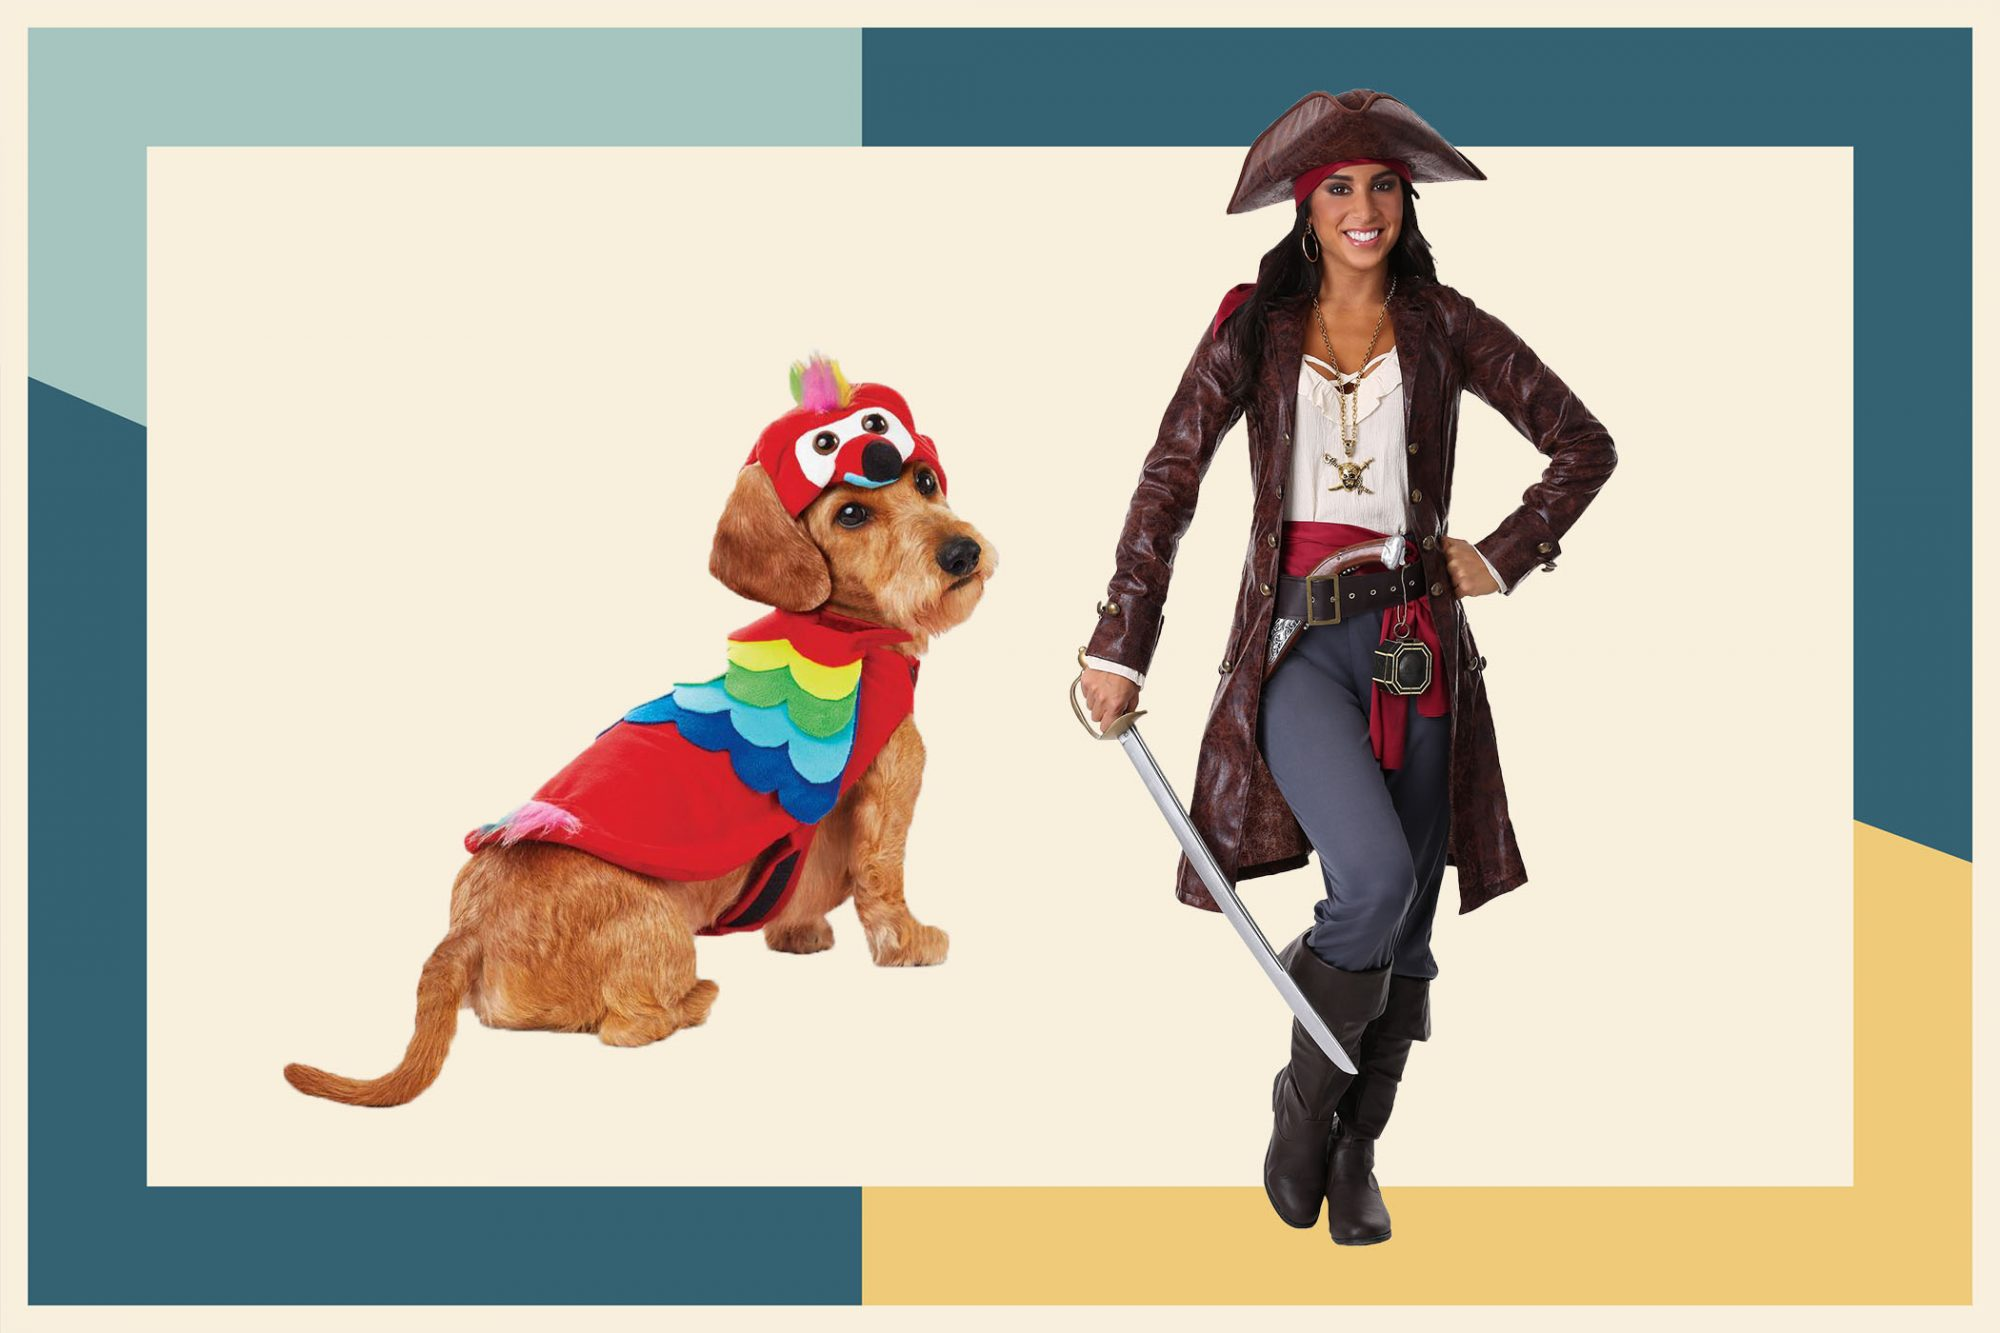 Pirate and parrot costume for people and dogs